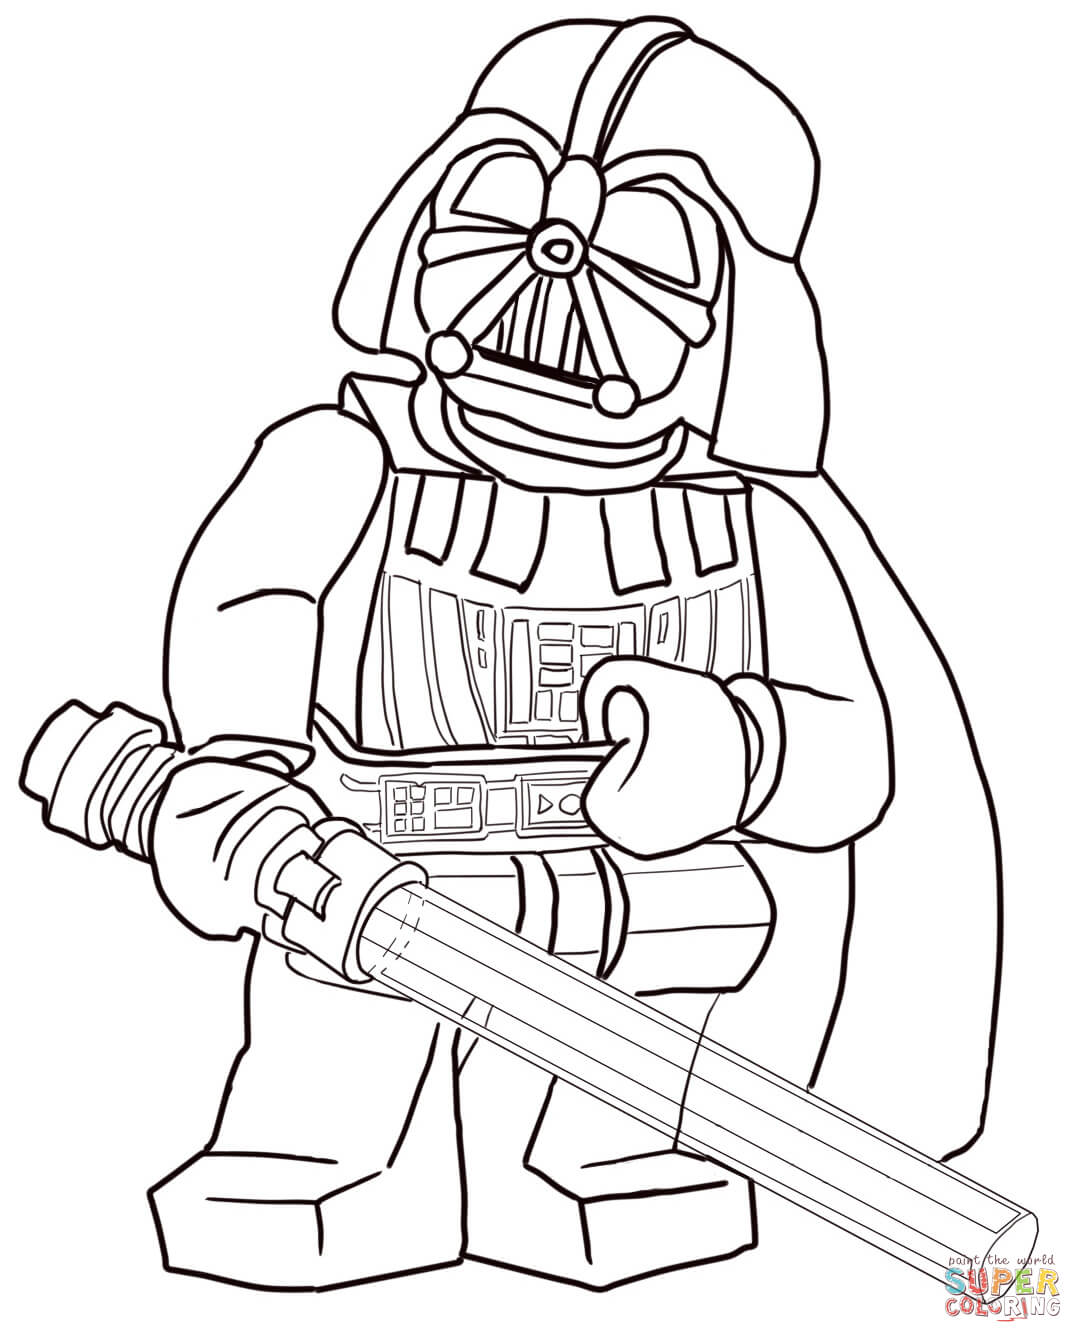 Star Wars Coloring Pages Pdf : Lego star wars darth vader coloring page free printable